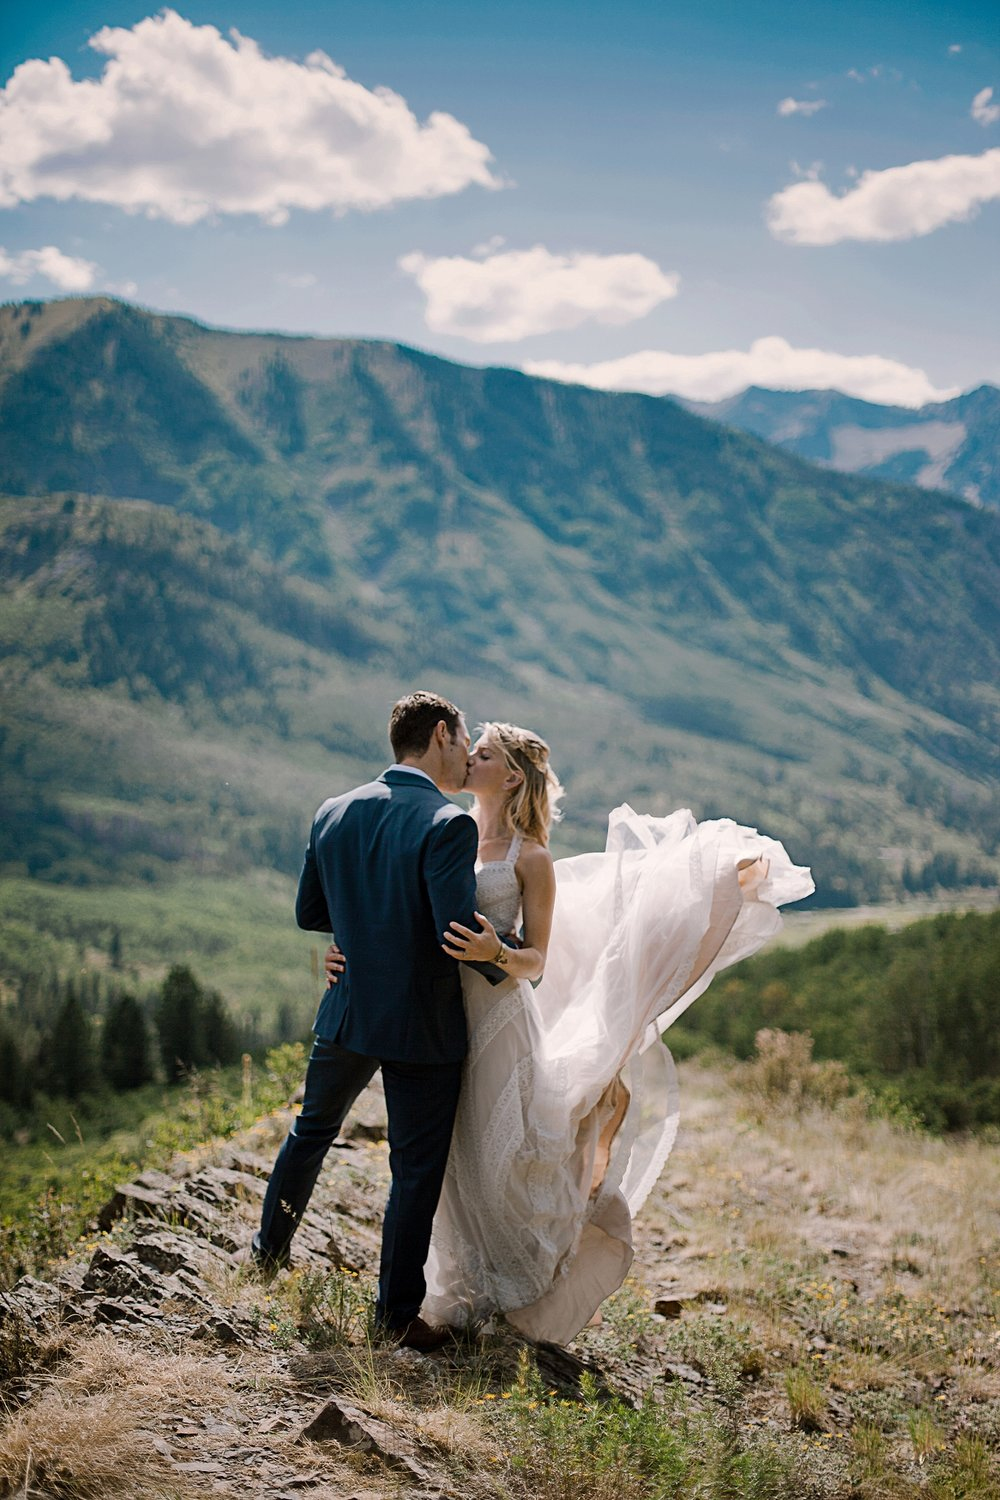 And-Two-Were-Tamed-intimate-adventurous-elopement-wedding-photography_0045.jpg